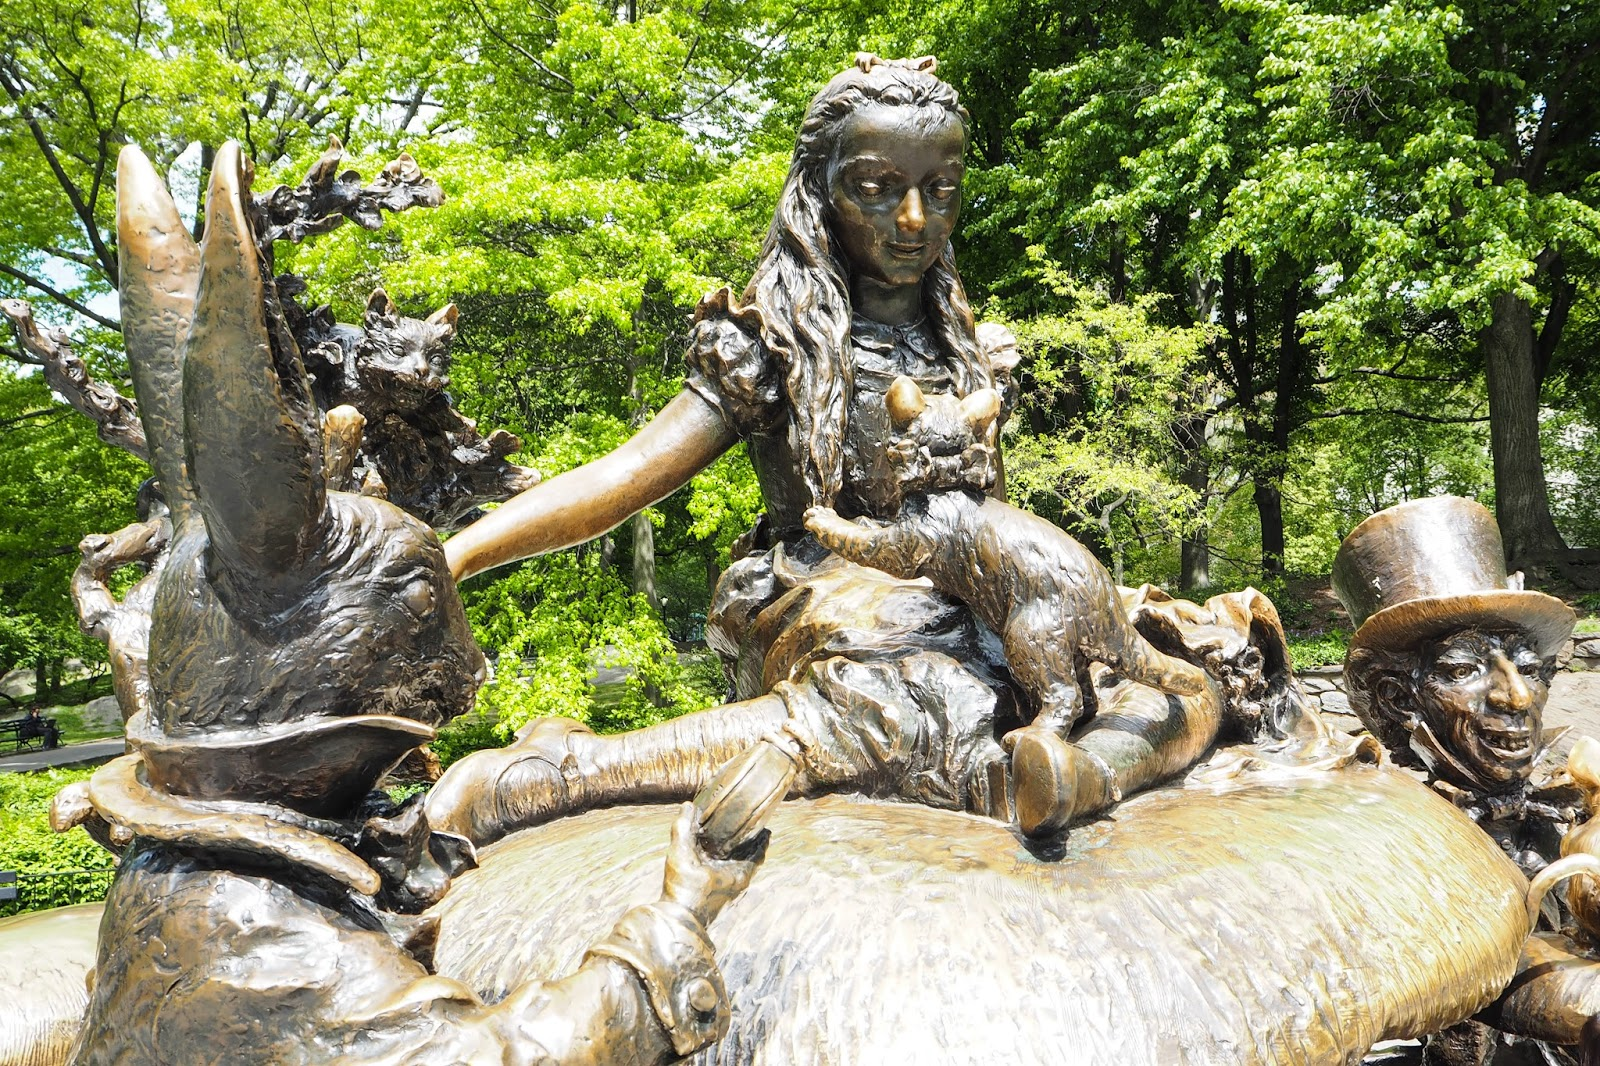 Statue of Alice in Wonderland in Central Park